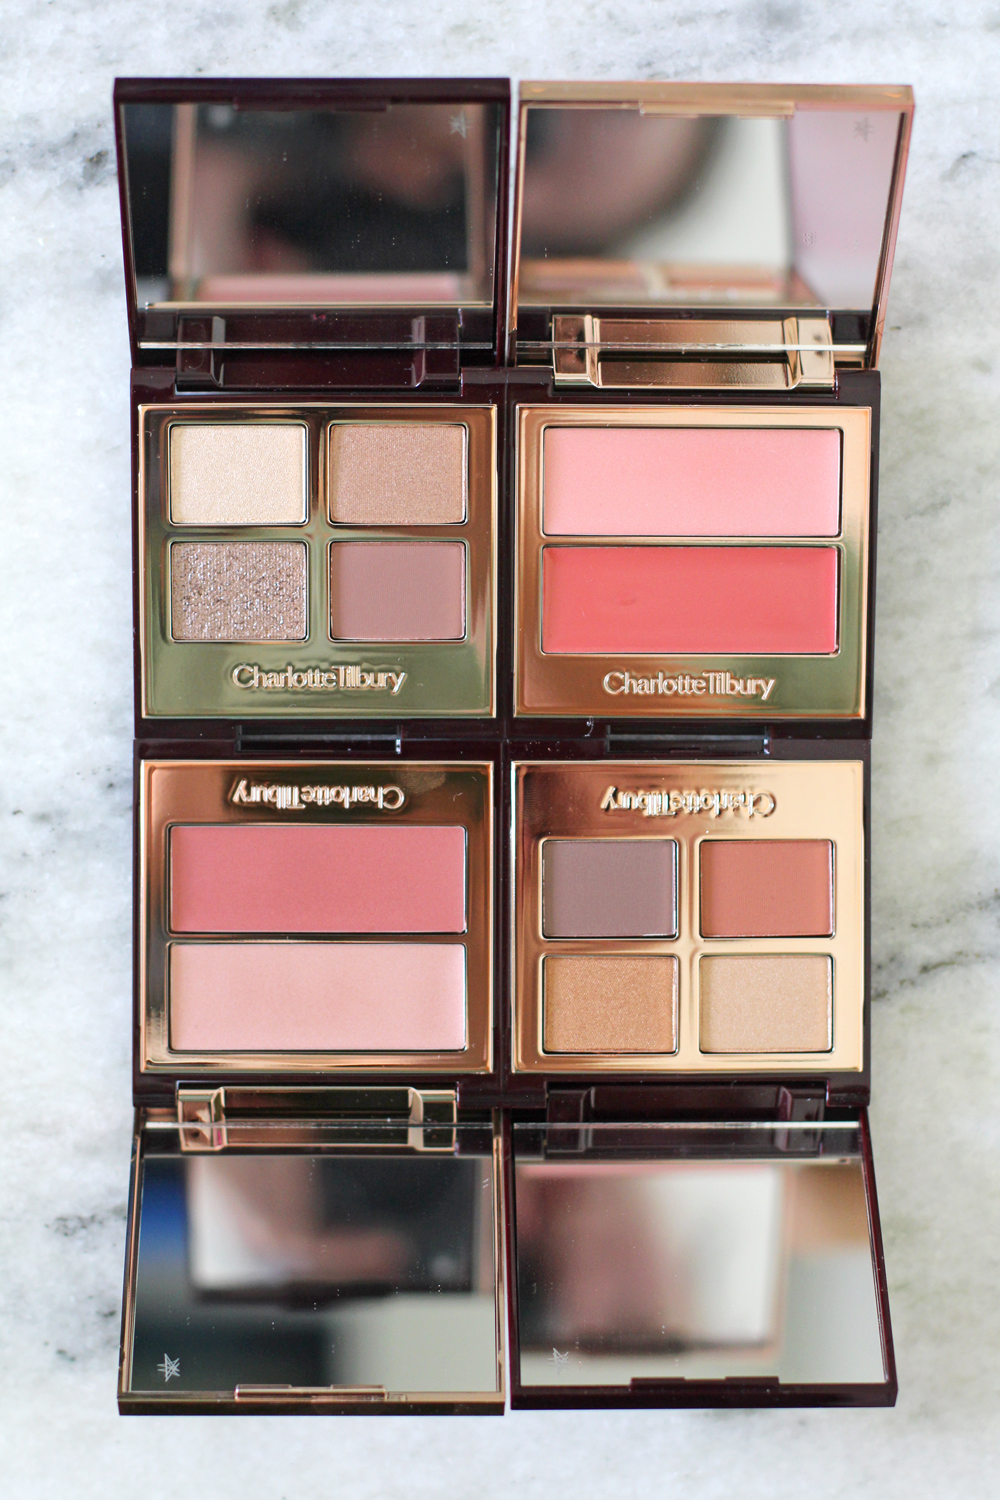 Charlotte Tilbury Beauty Filter eyeshadow palettes and blush & highlighter duos - luxury beauty blog